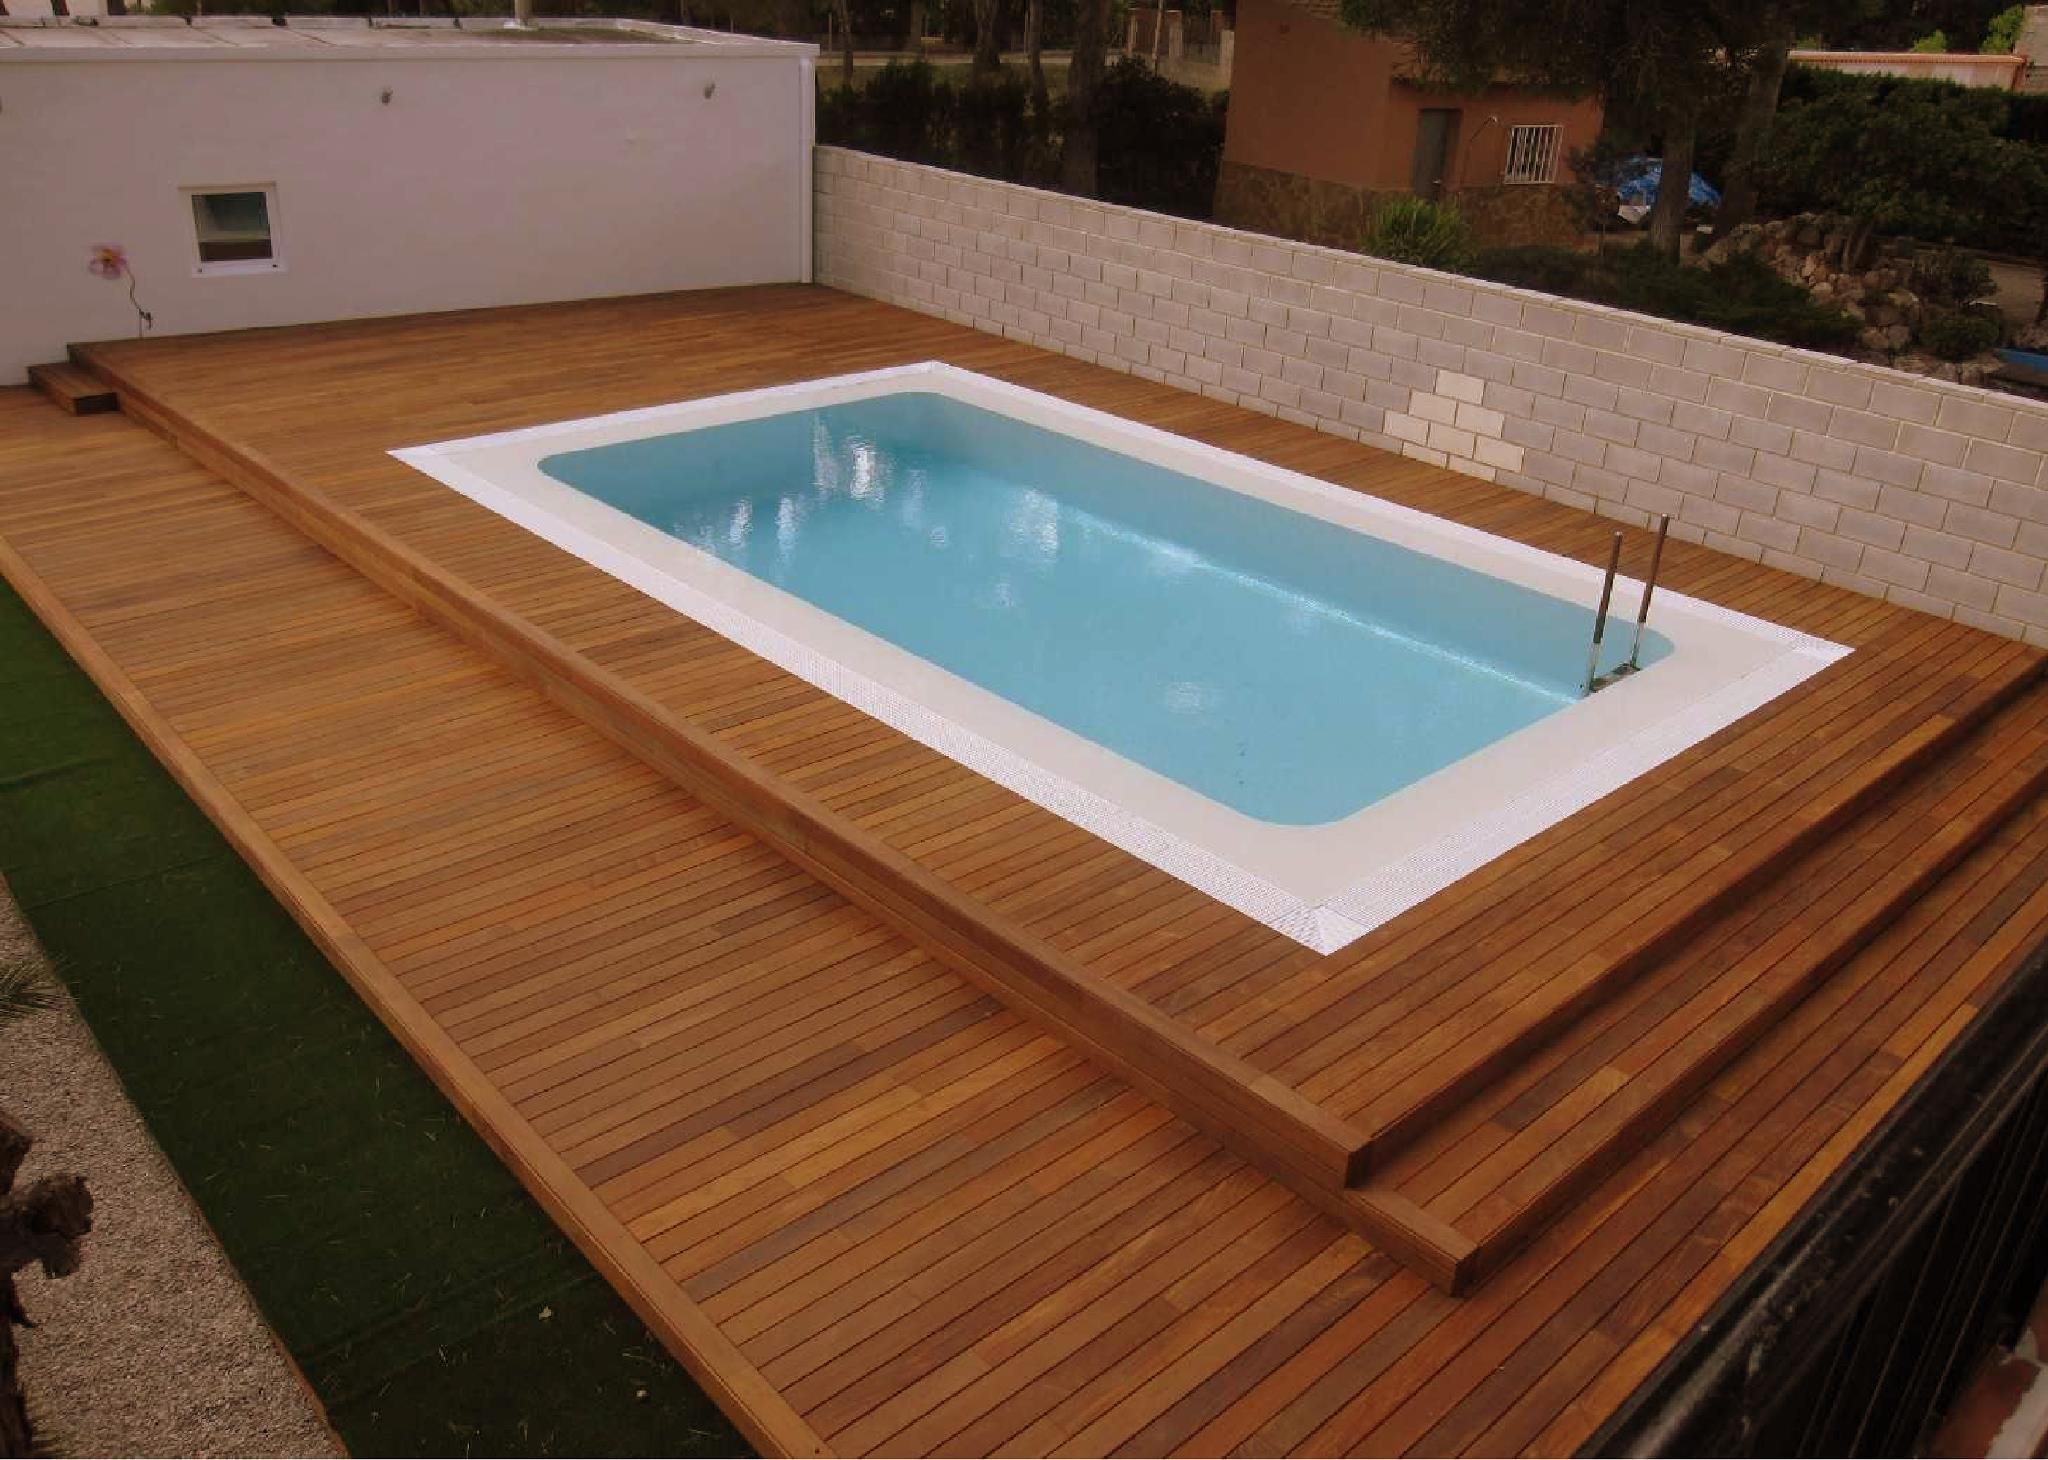 China swimming pool wooden deck photos pictures made for Wooden pool